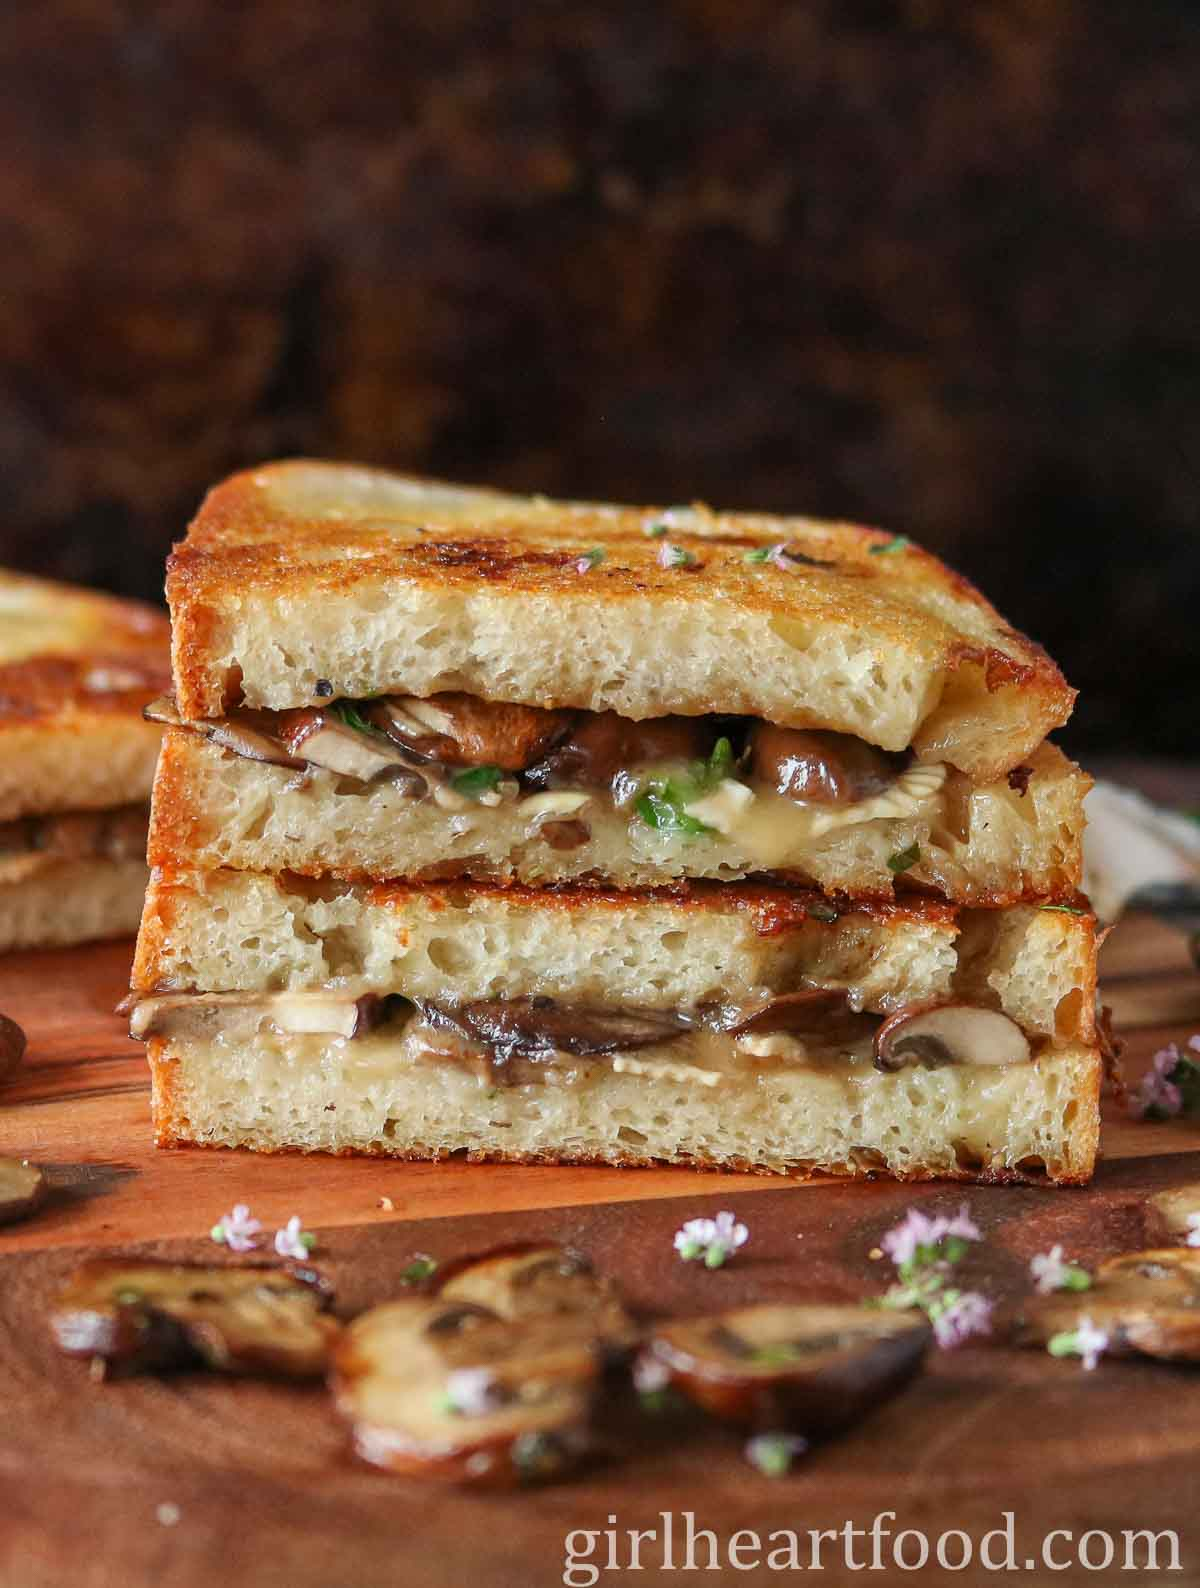 Stack of two halves of a mushroom Brie sandwich.